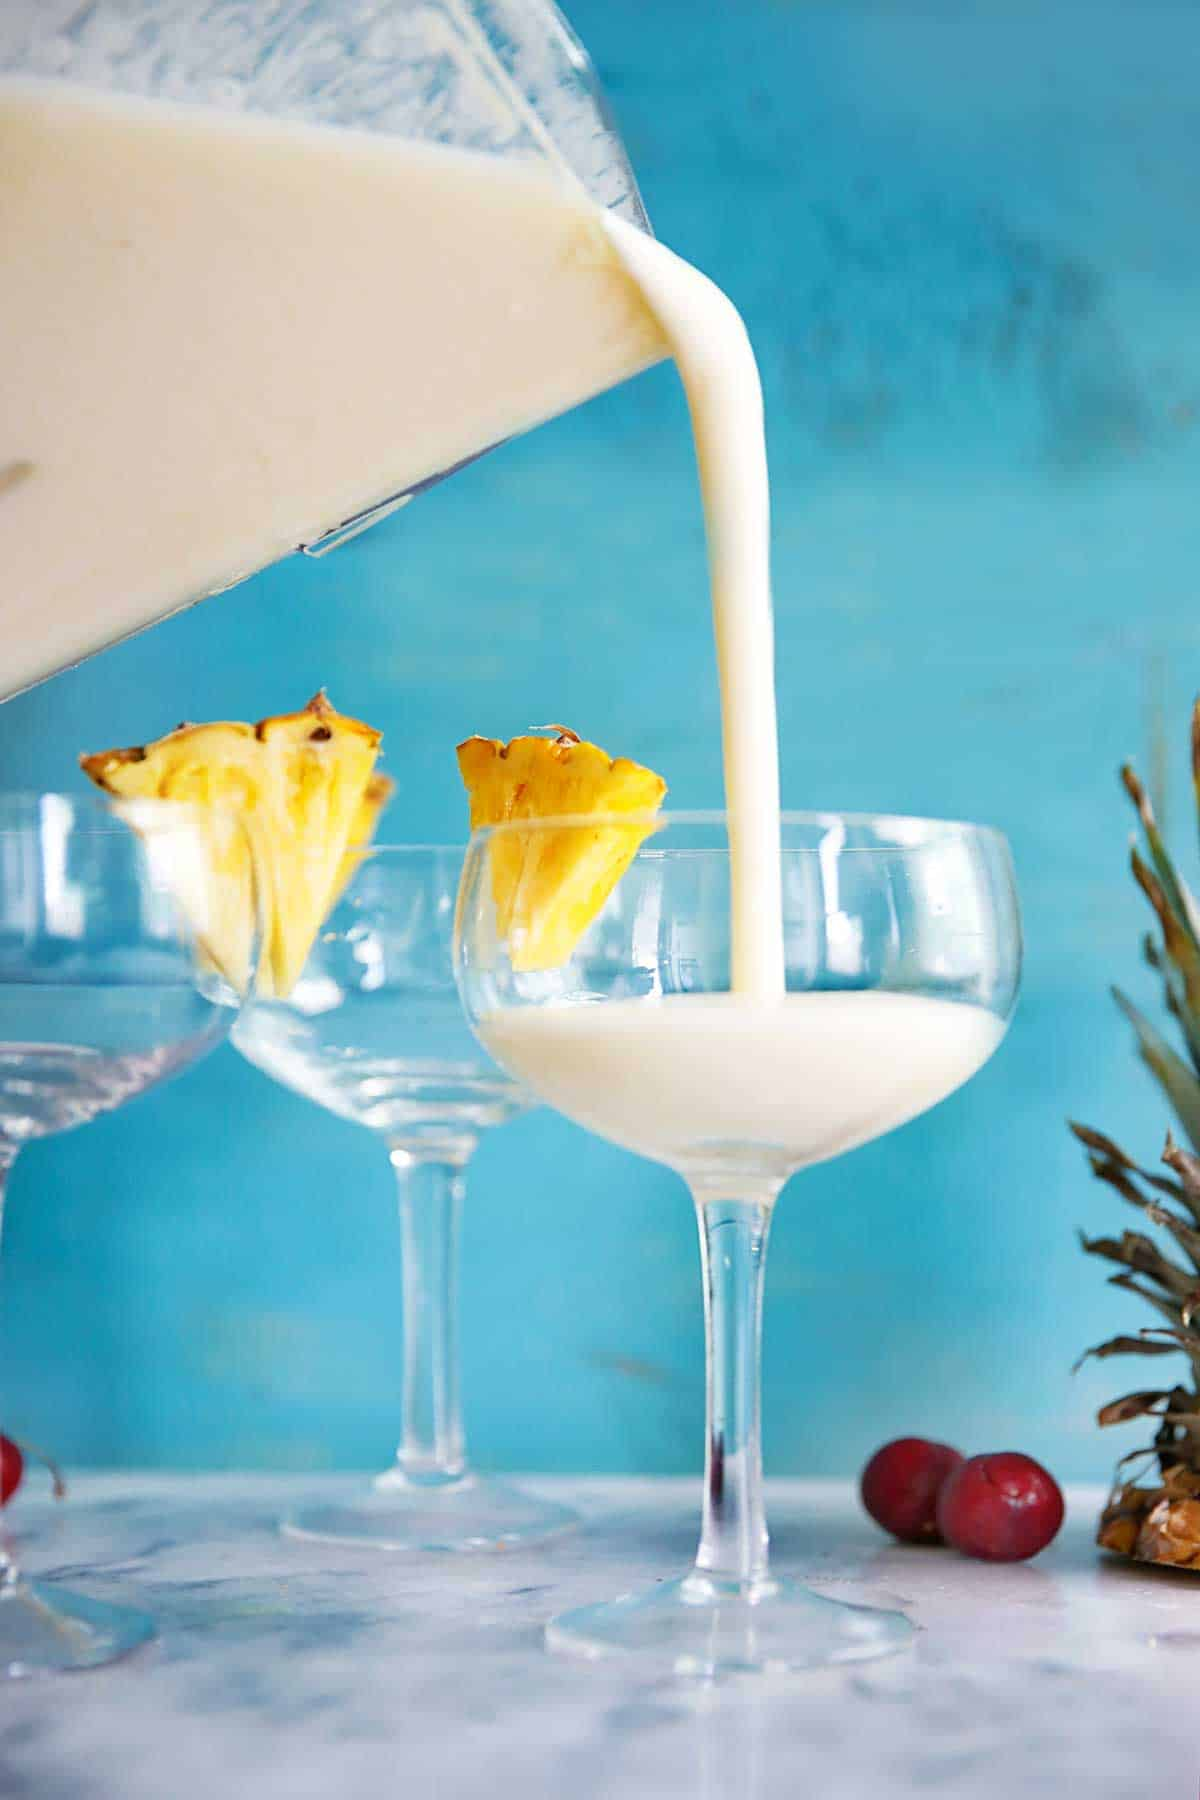 4 Ingredient Lightened Up Pina Colada {Dairy-free, no added sugar} | Lexi's Clean Kitchen